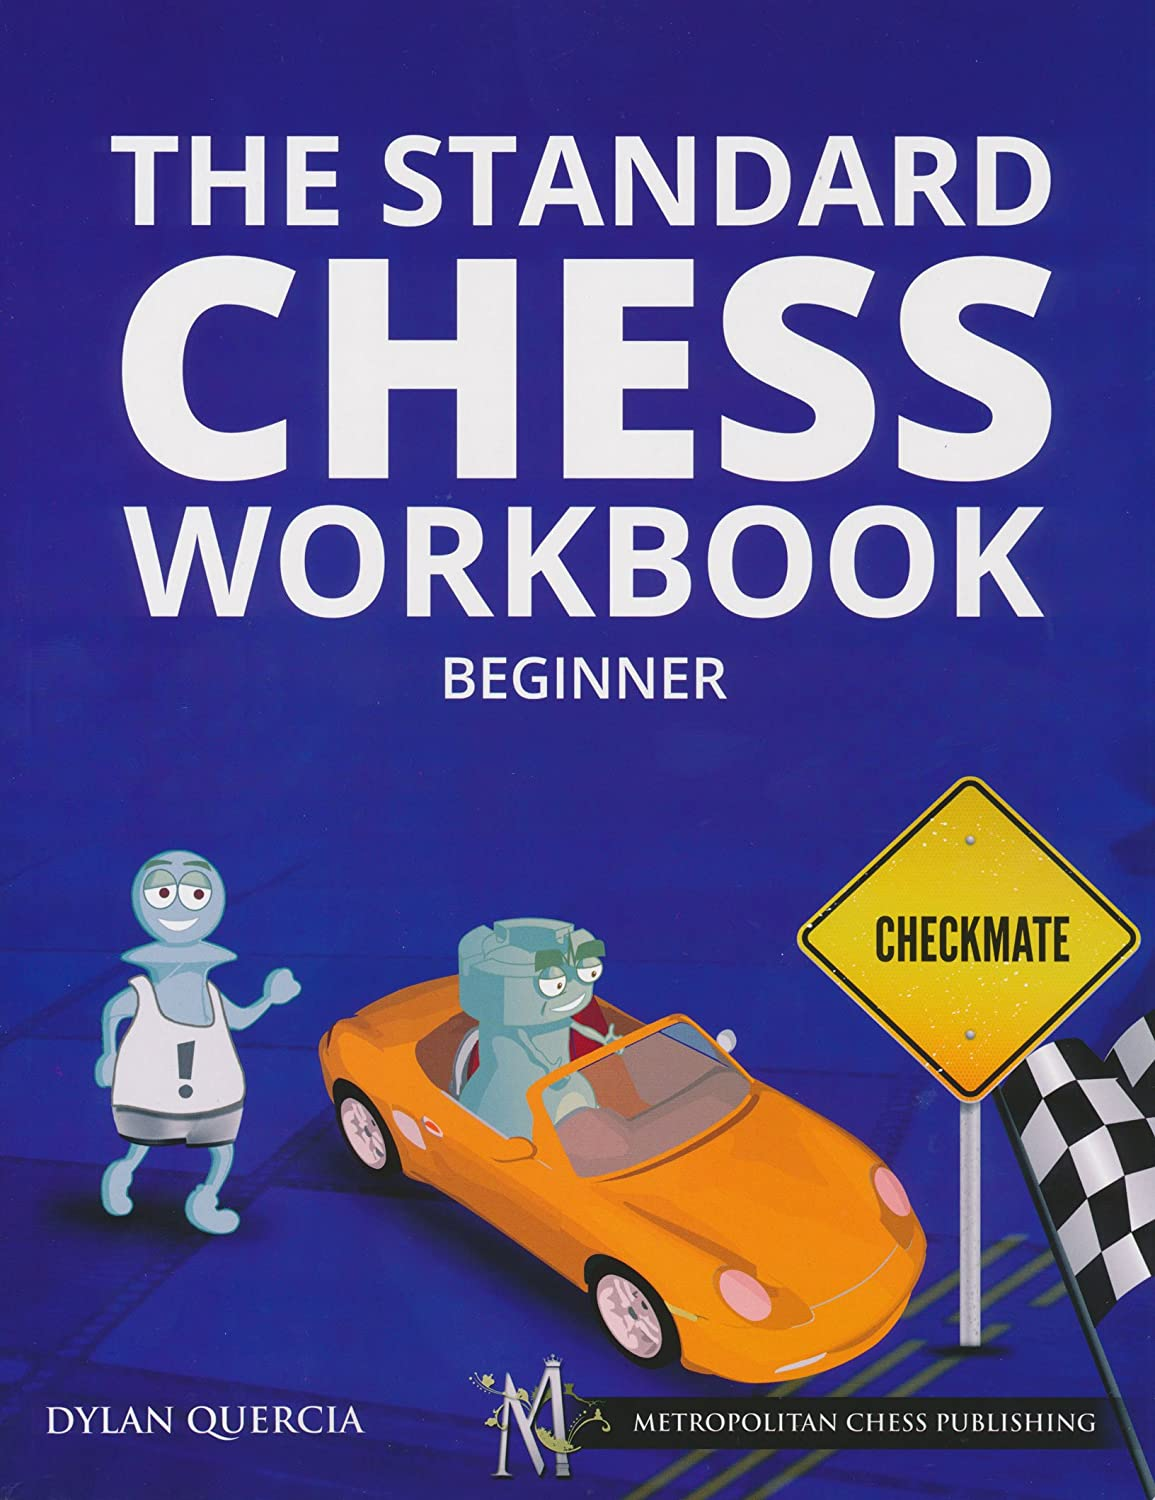 Amazon.com: The Standard Chess Workbook - Beginner: Dylan Quercia ...